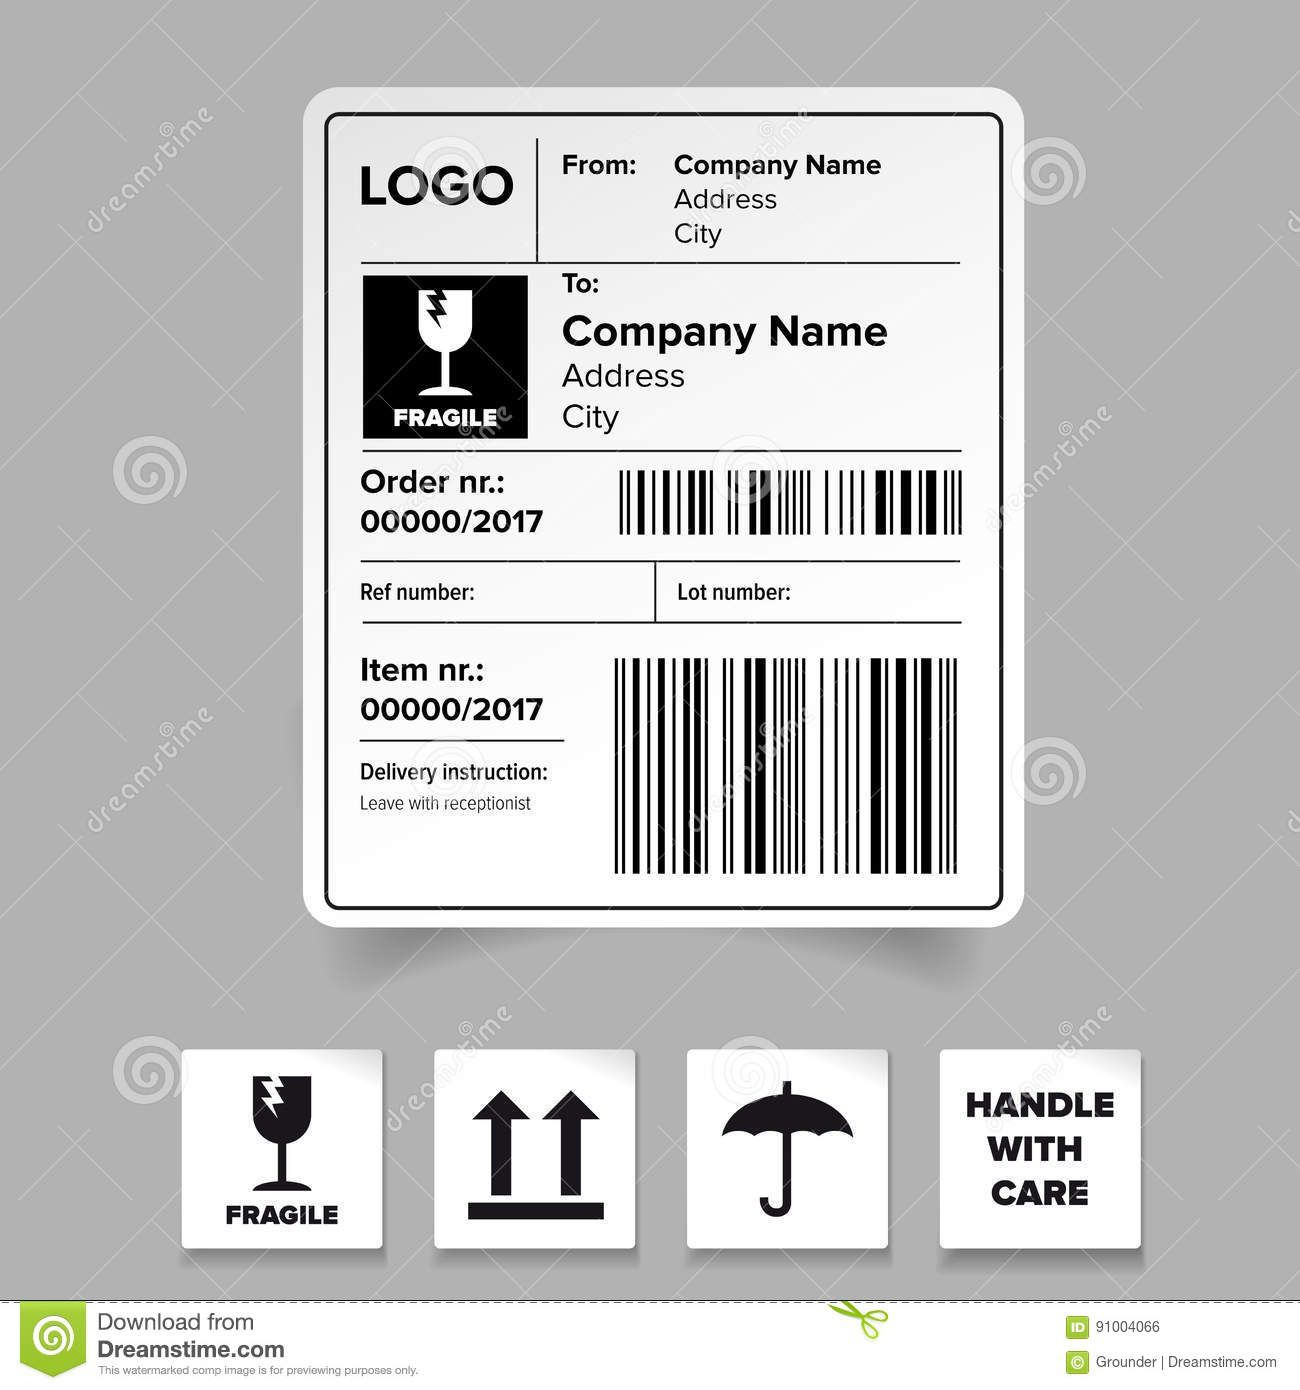 009 Unusual Free Shipping Label Format Sample Full